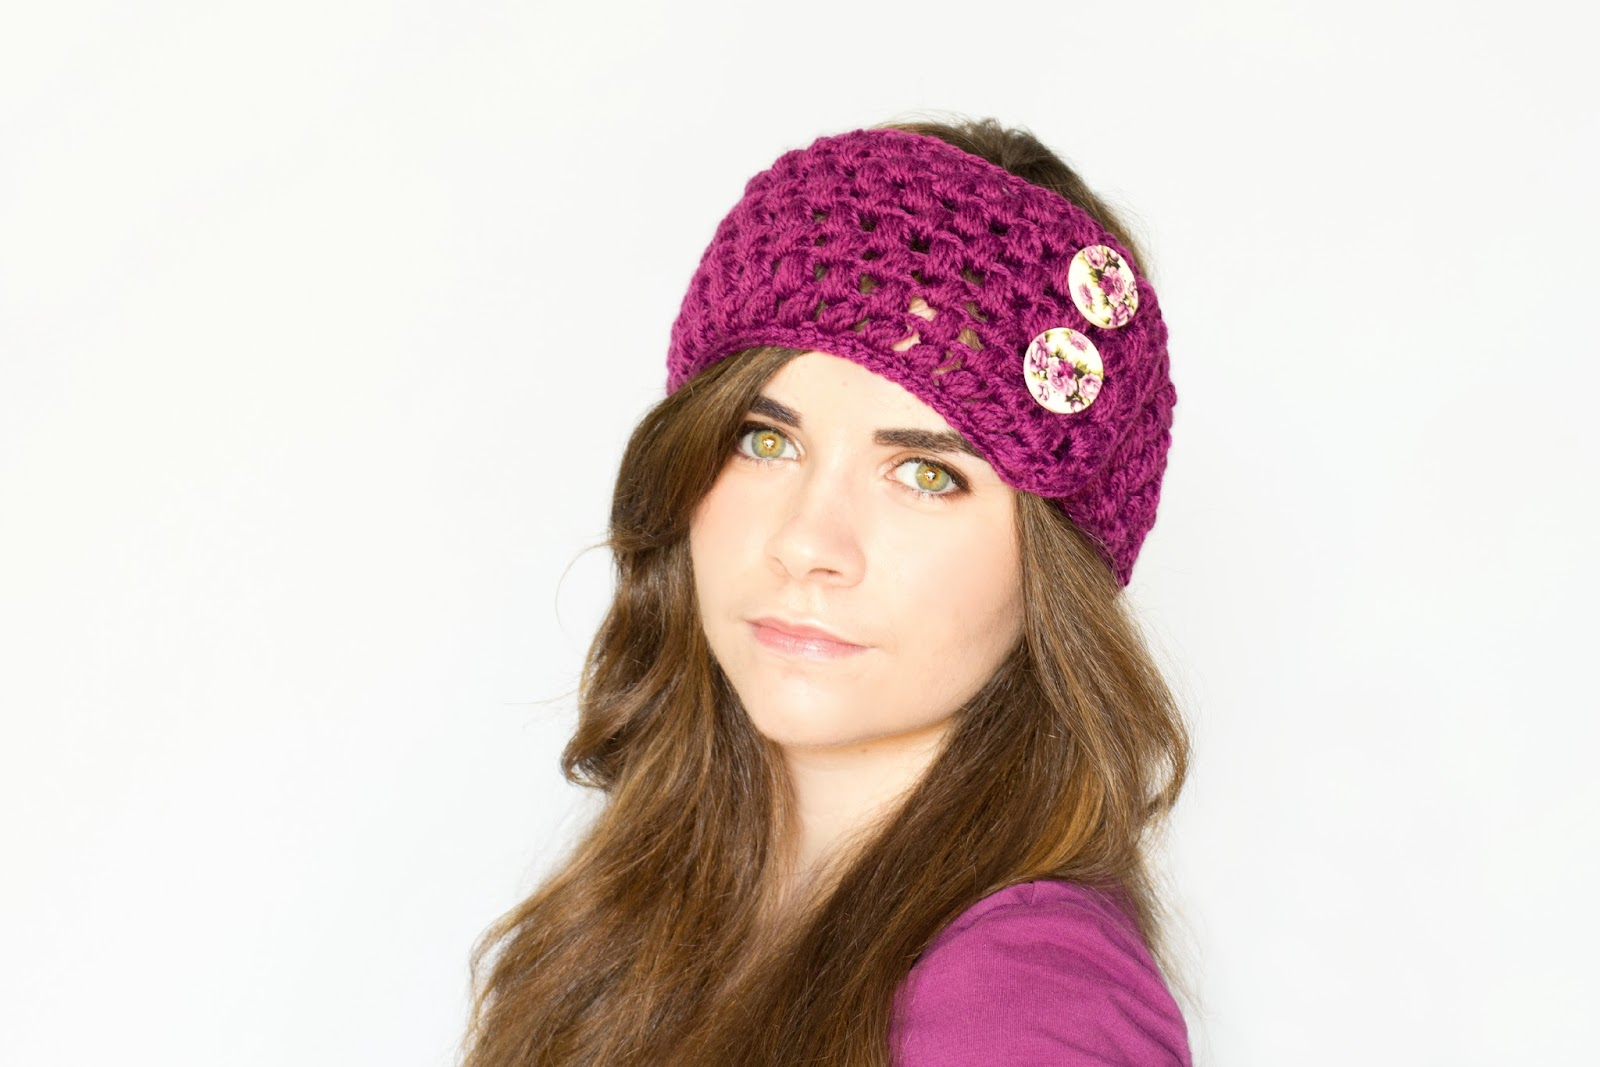 Crochet Ear Warmer : ... Honey Craft, Crochet, Create: Puff Stitch Ear Warmer Crochet Pattern